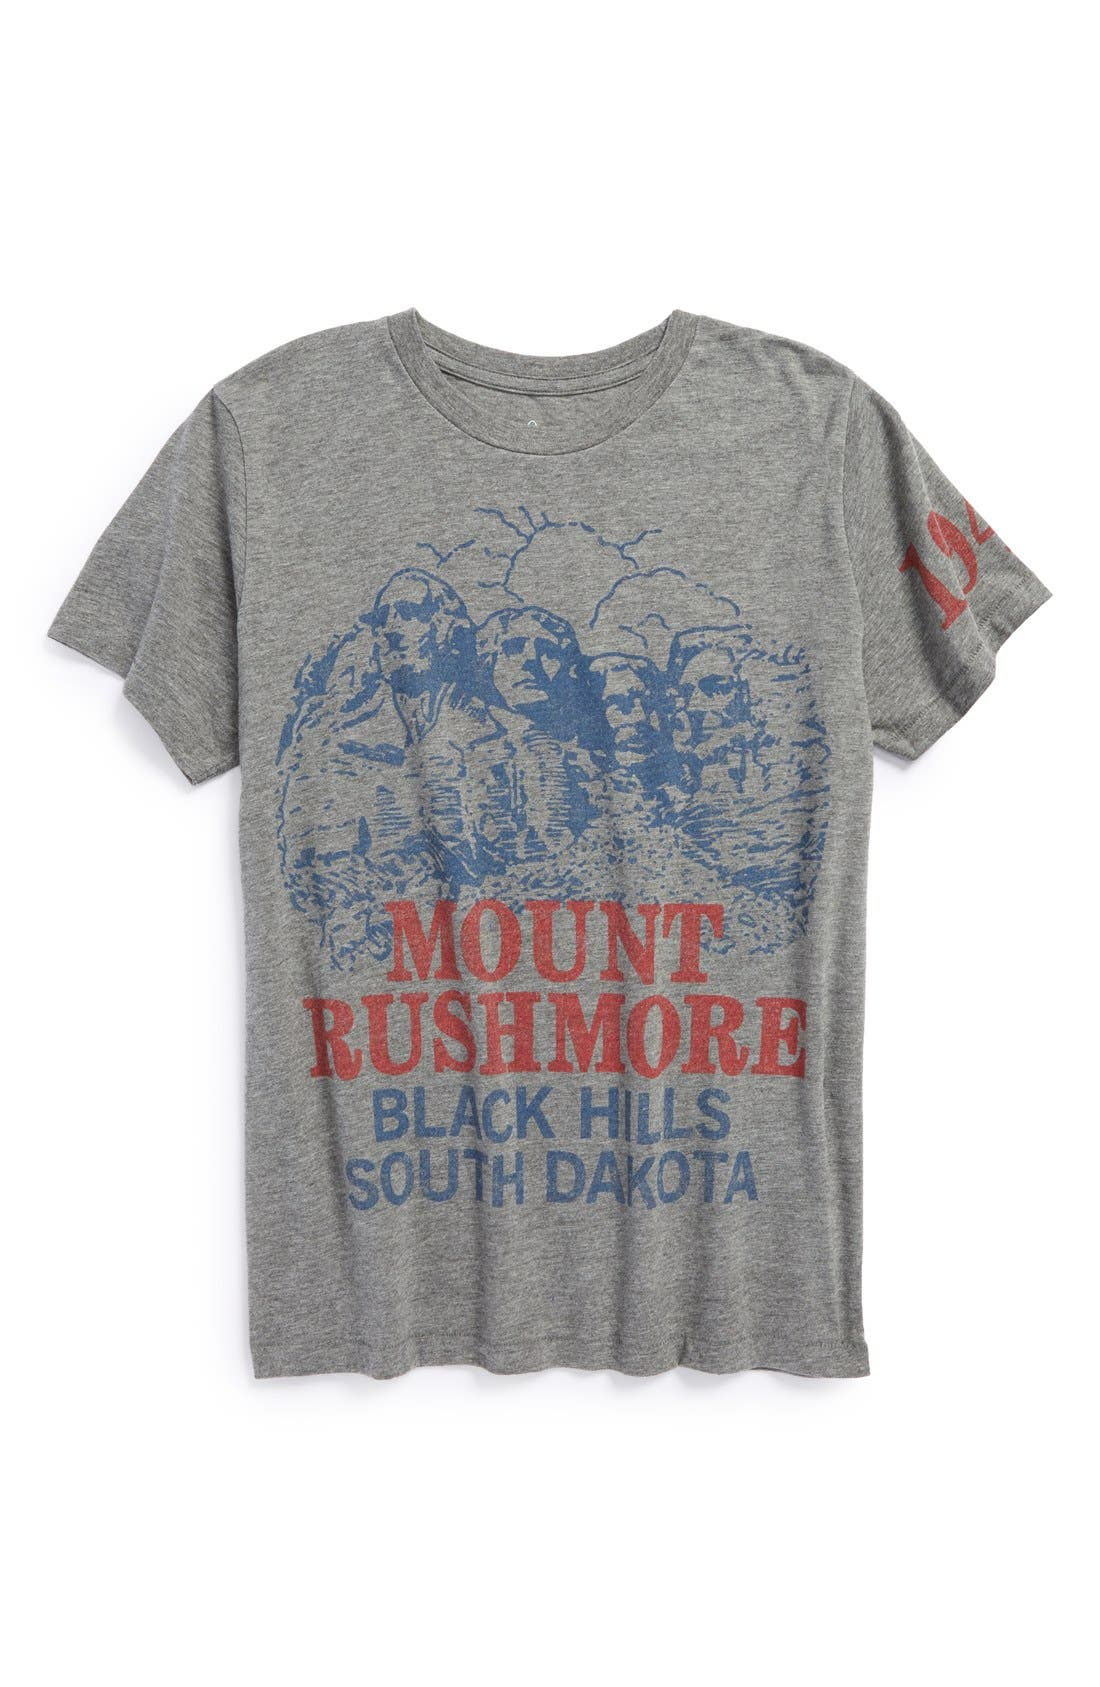 Alternate Image 1 Selected - Peek 'Mt. Rushmore' Short Sleeve T-Shirt (Baby Boys)